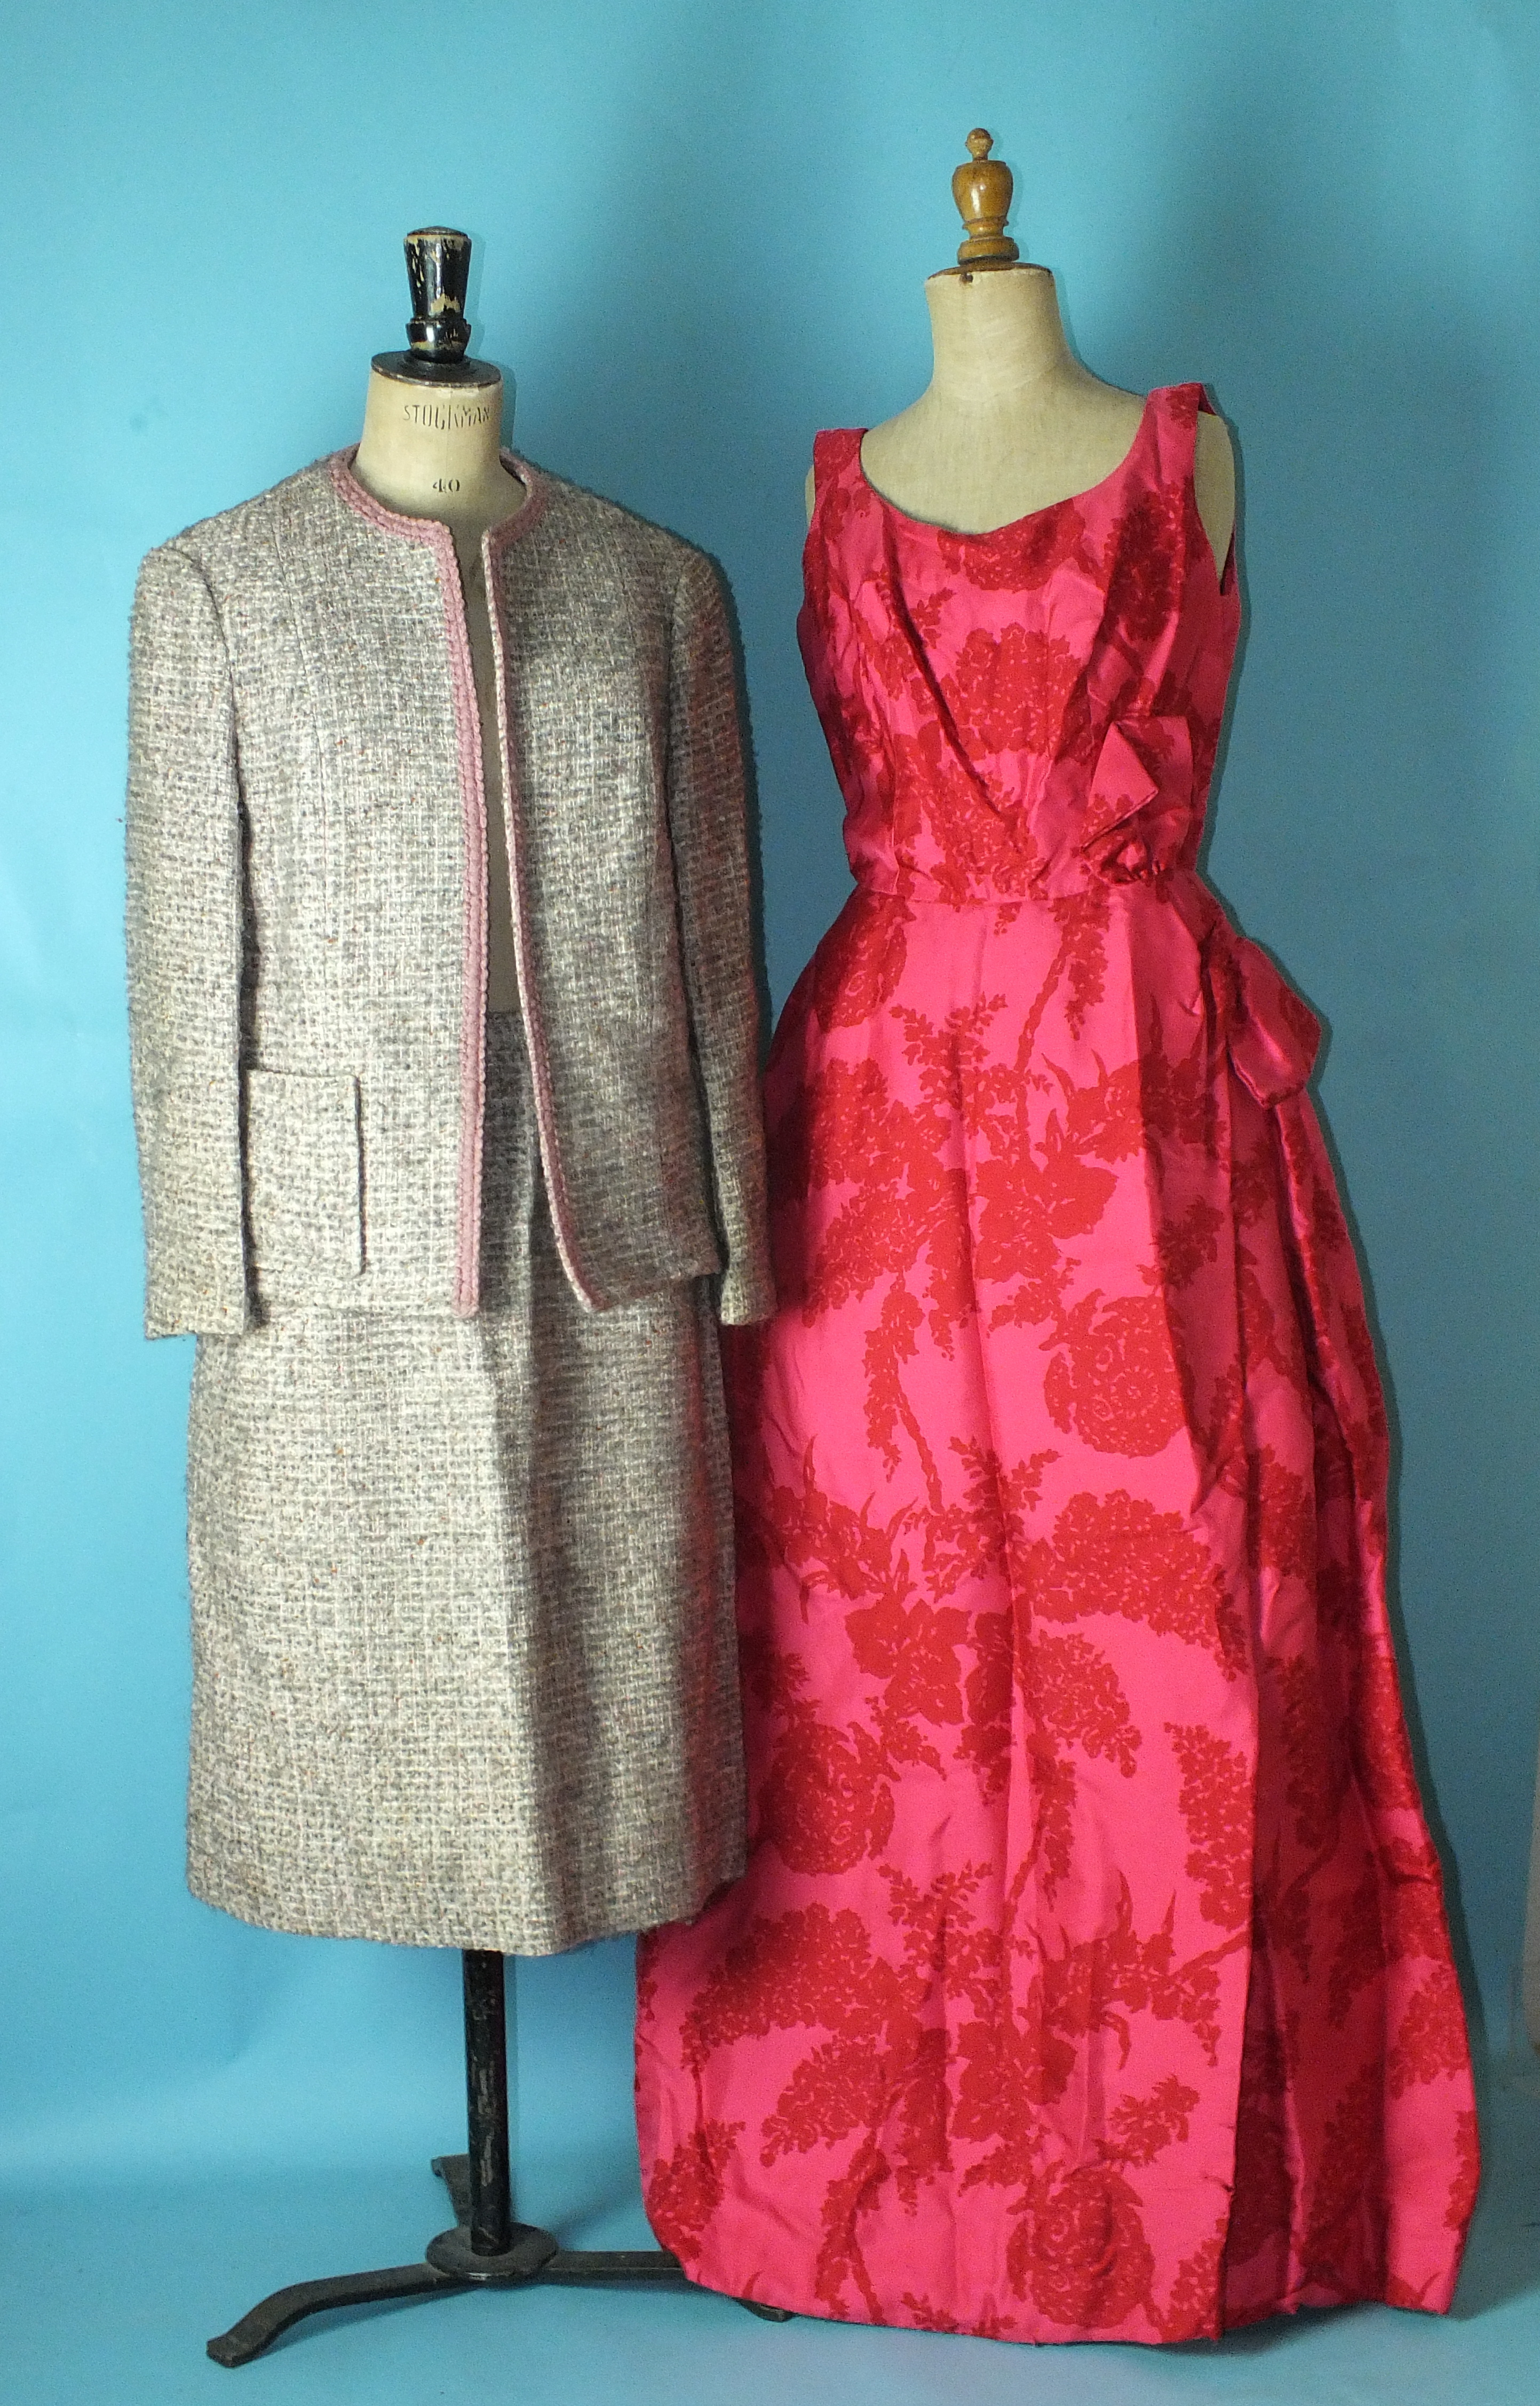 Lot 529 - Vintage clothing: A Saks Fifth Avenue eau de nil dress and jacket, (unworn, still with labels and